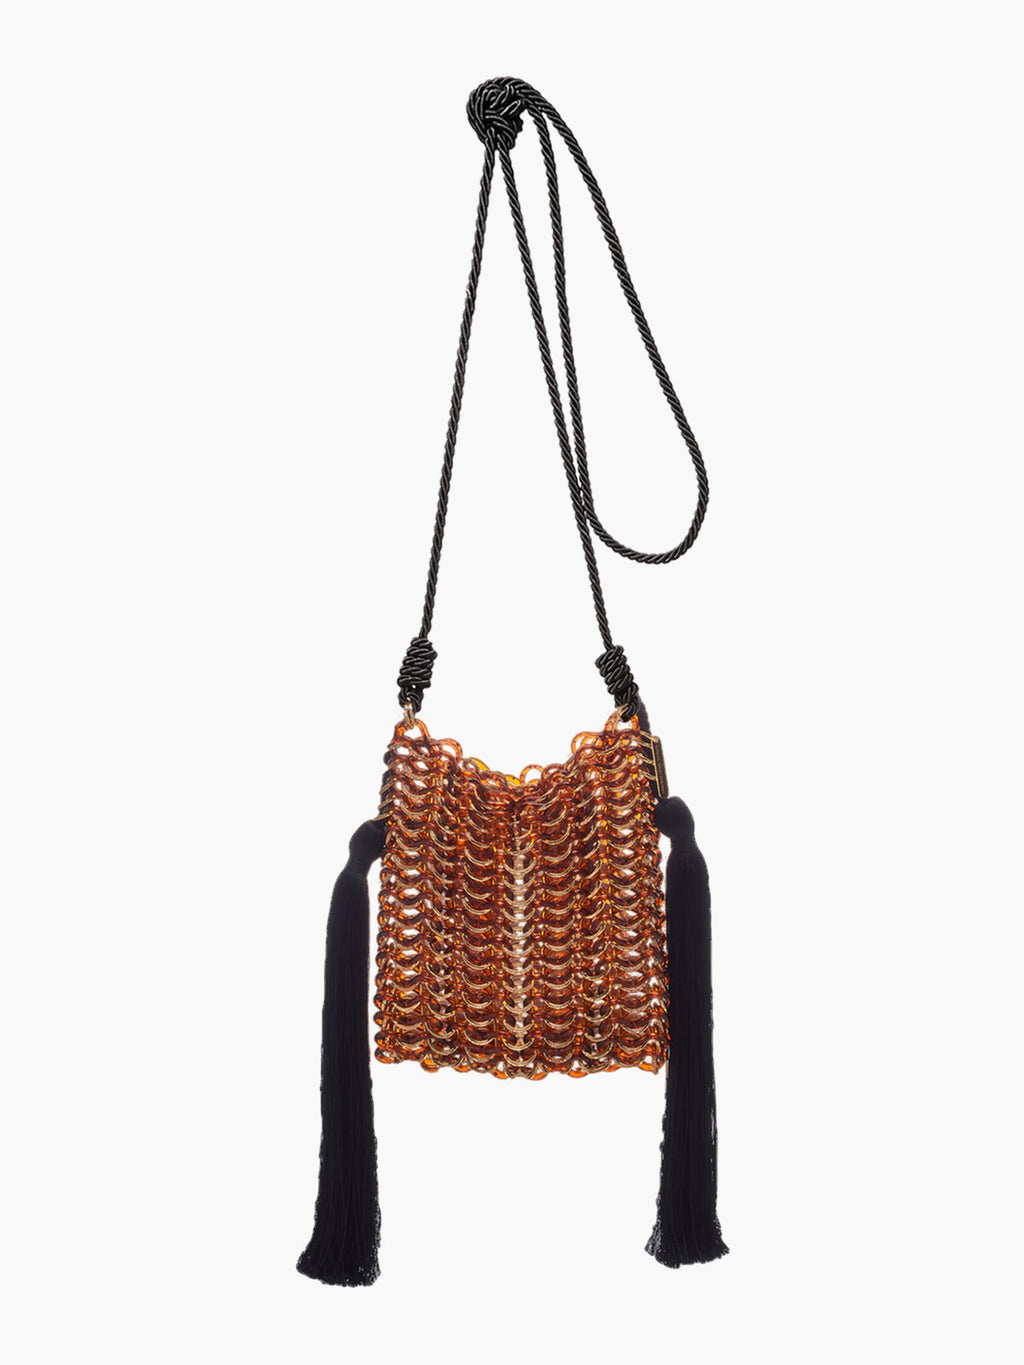 Luisella Shell Bag | Brown